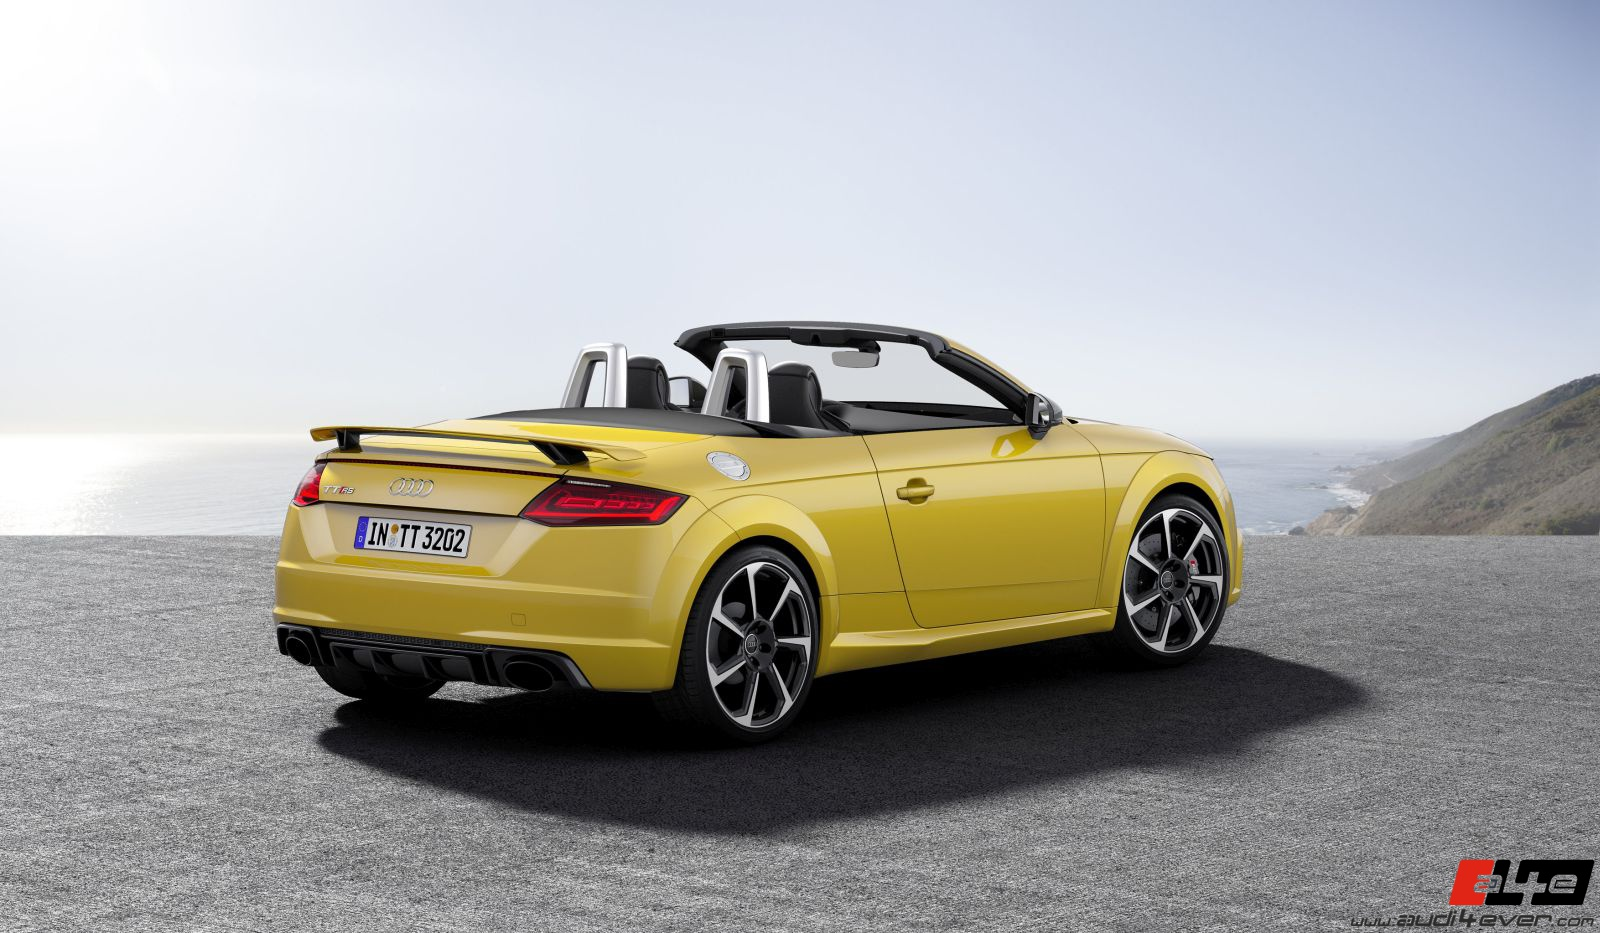 a4e gallery audi tt tts ttrs coupe roadster. Black Bedroom Furniture Sets. Home Design Ideas